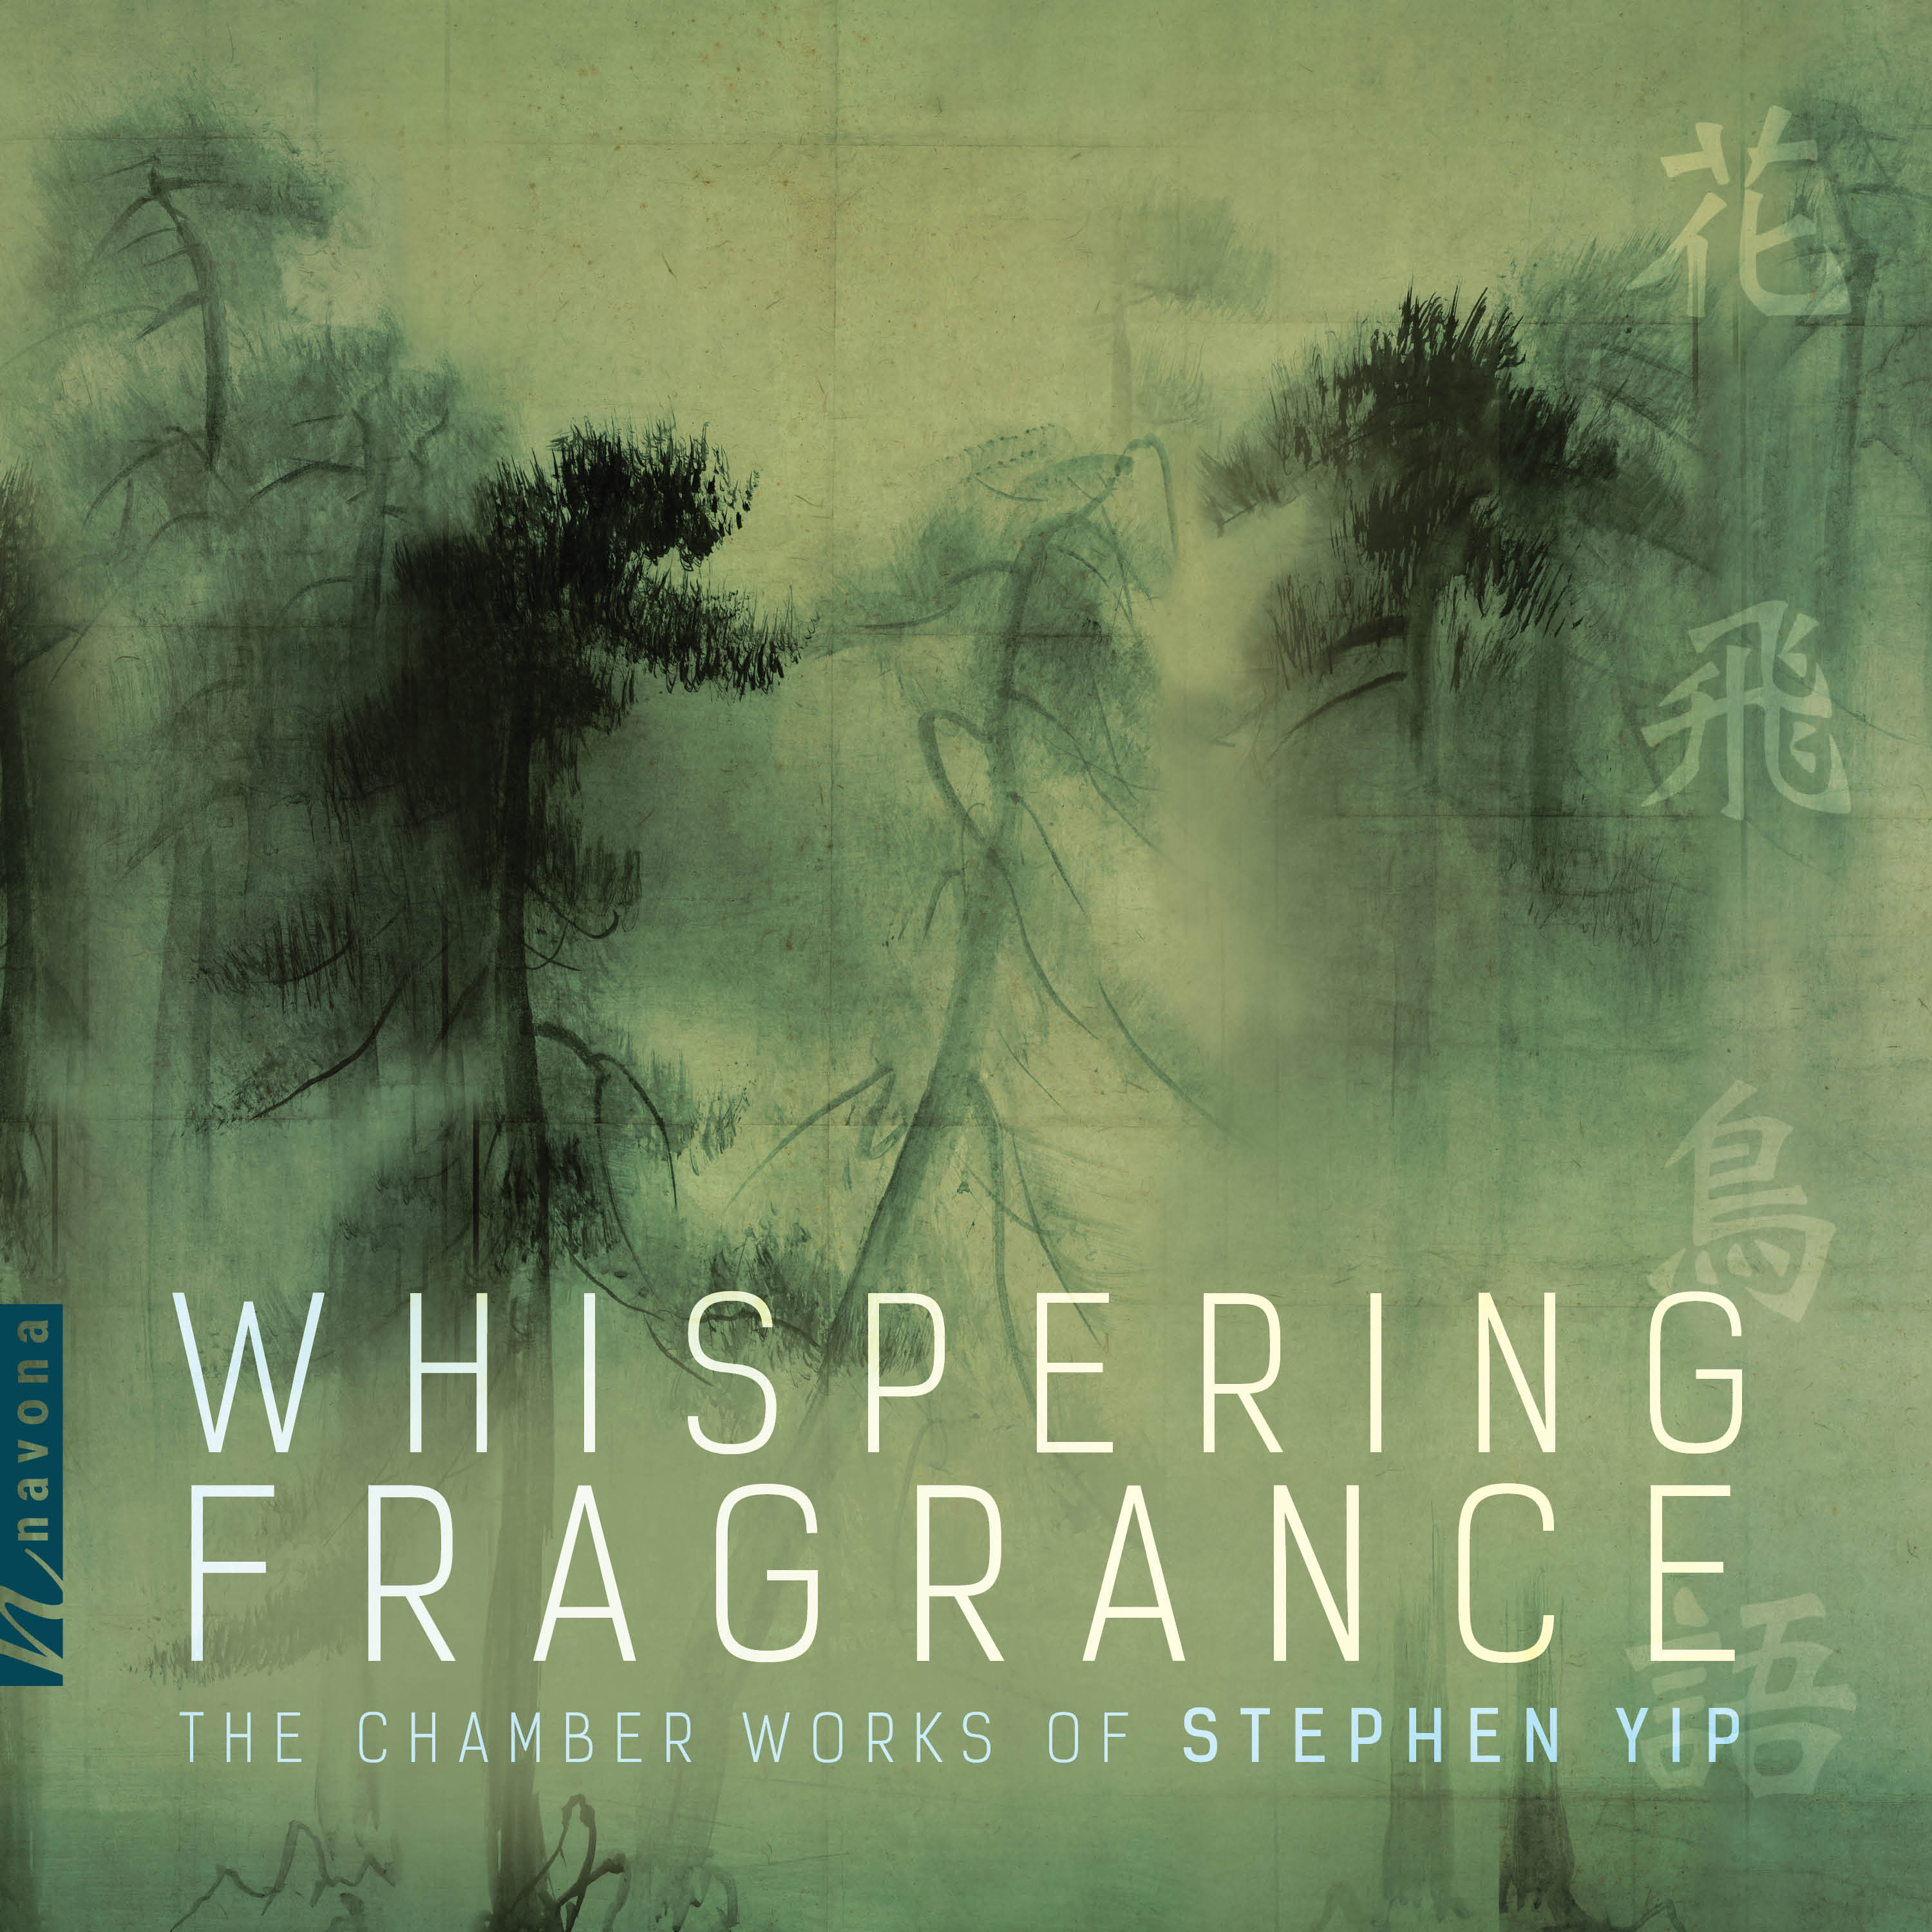 nv6175---whispering-fragrance---front-cover